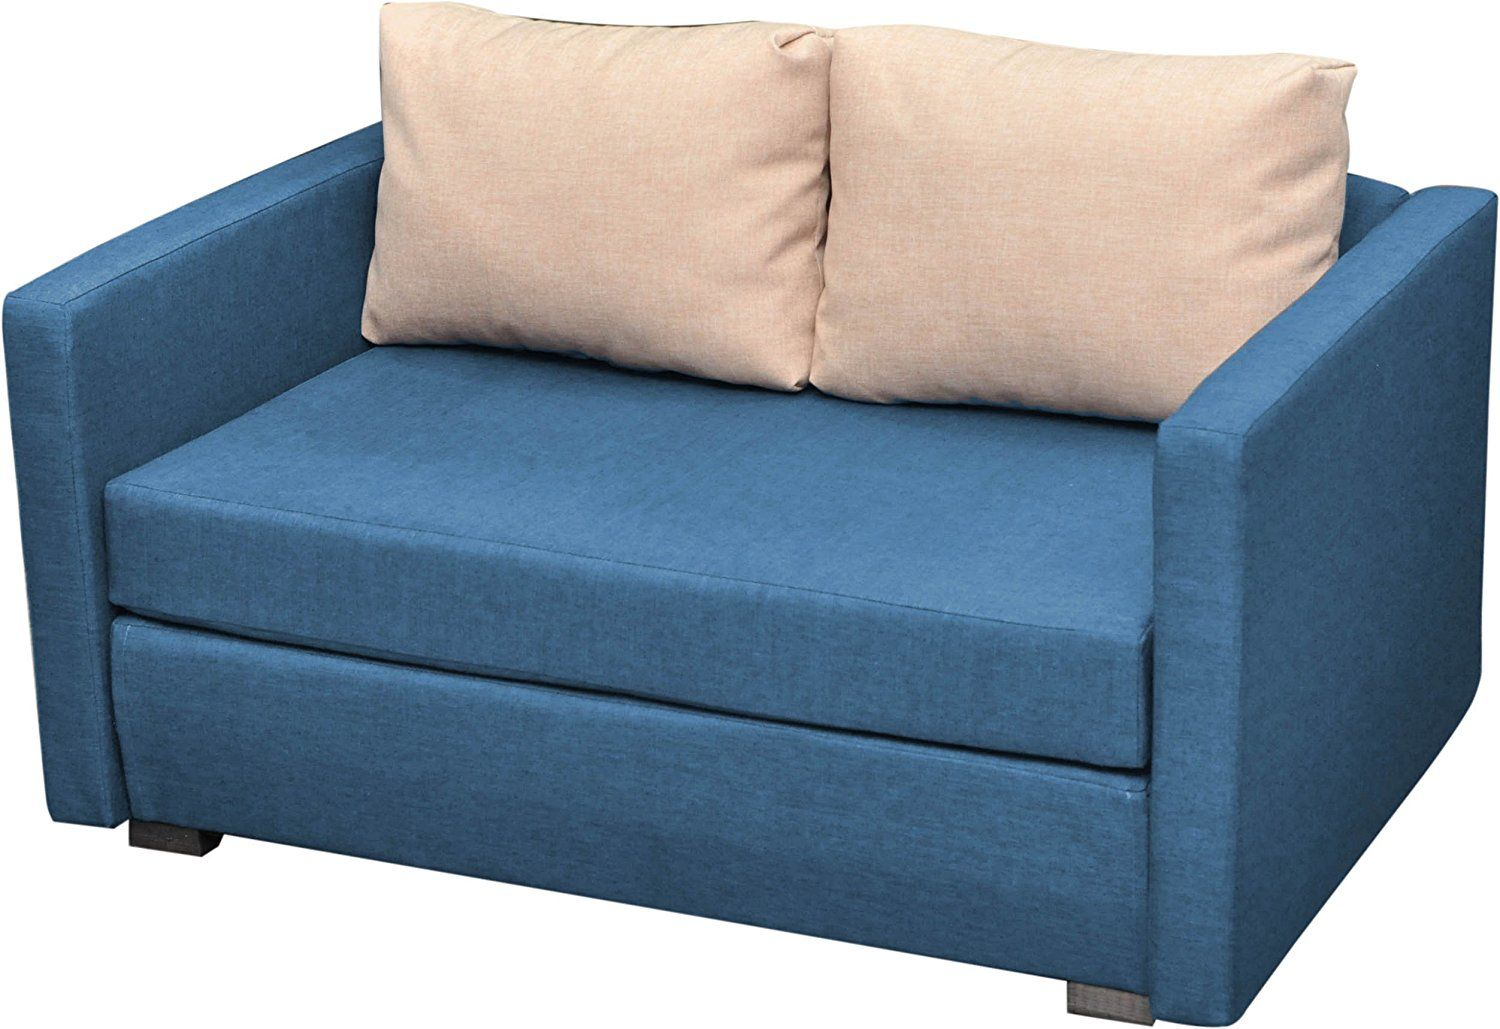 Moderne Sofa Vcm Engol 2 Seater Sit N Sleep Couch Blue Comfy Sofa